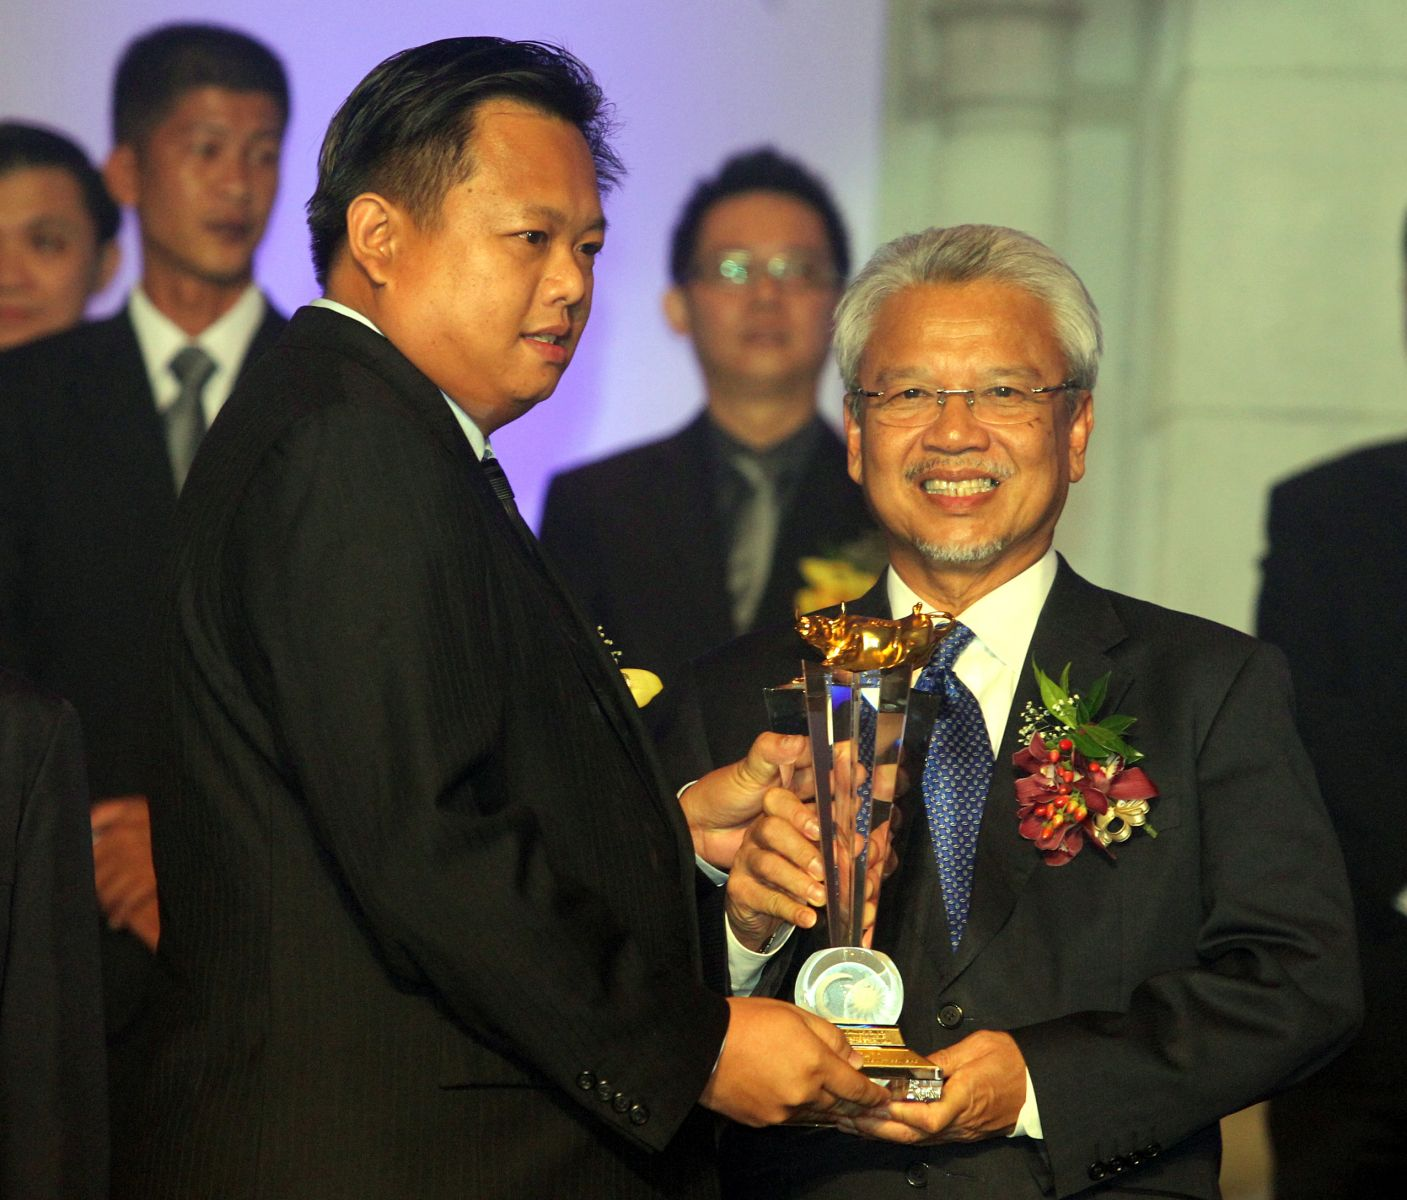 The Moment of receiving the trophy from the Minister of Finance 2